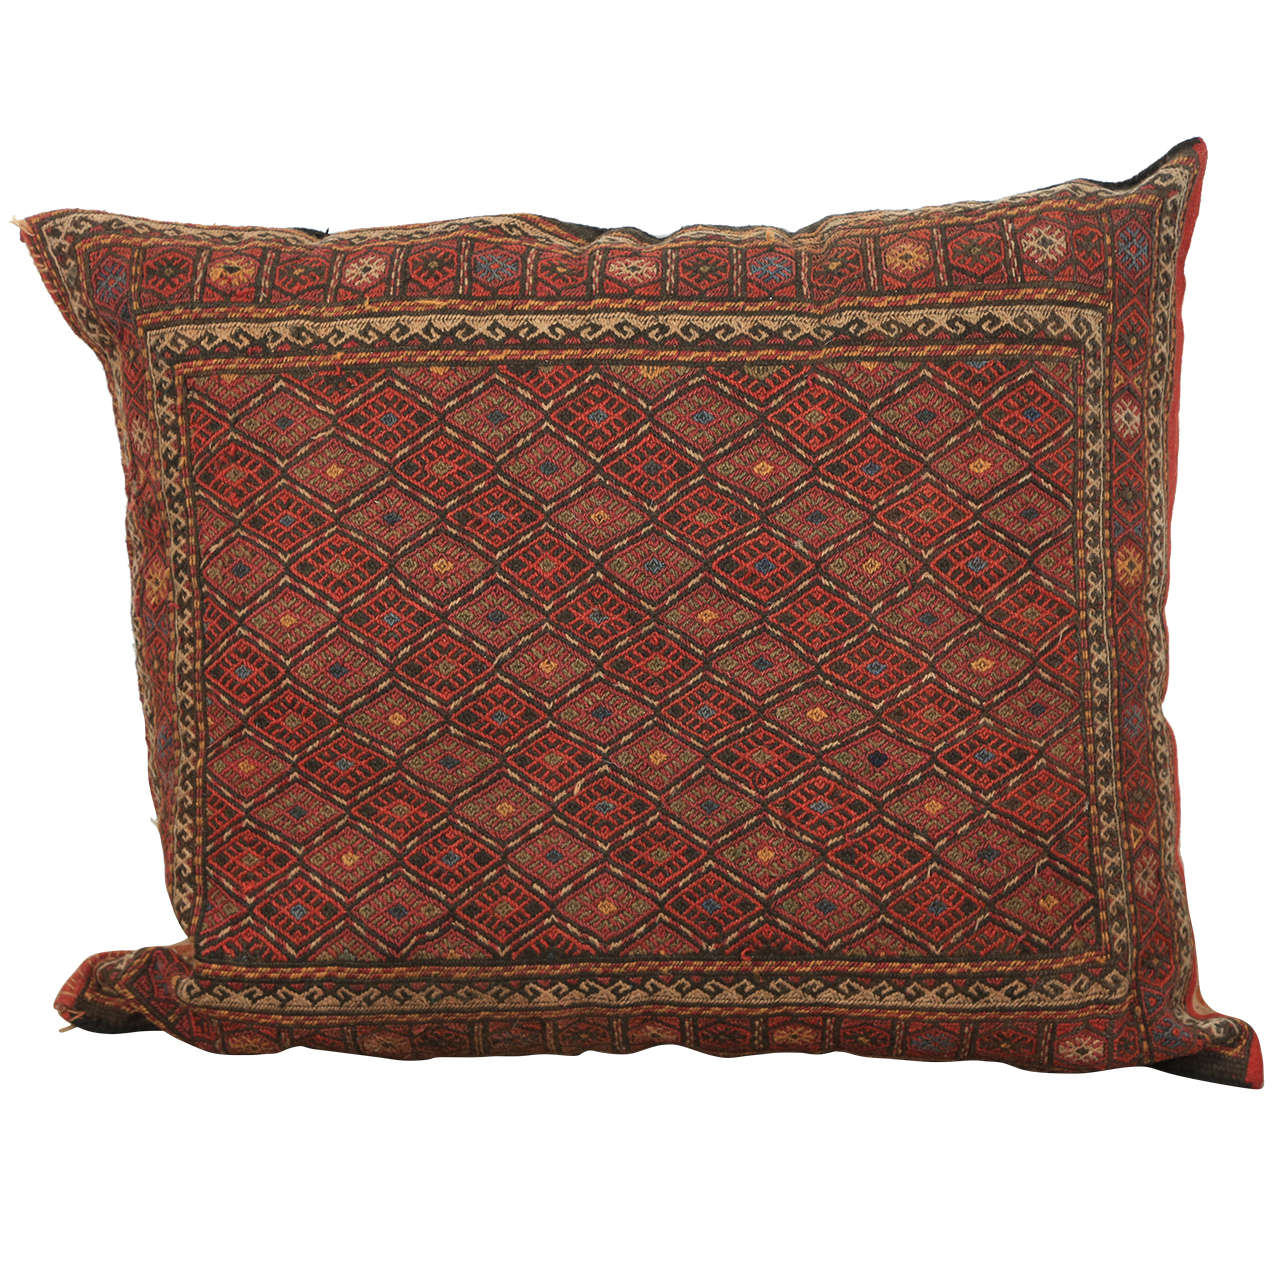 Middle Eastern Turkish Tribal Kilim Floor Pillow For Sale at 1stdibs